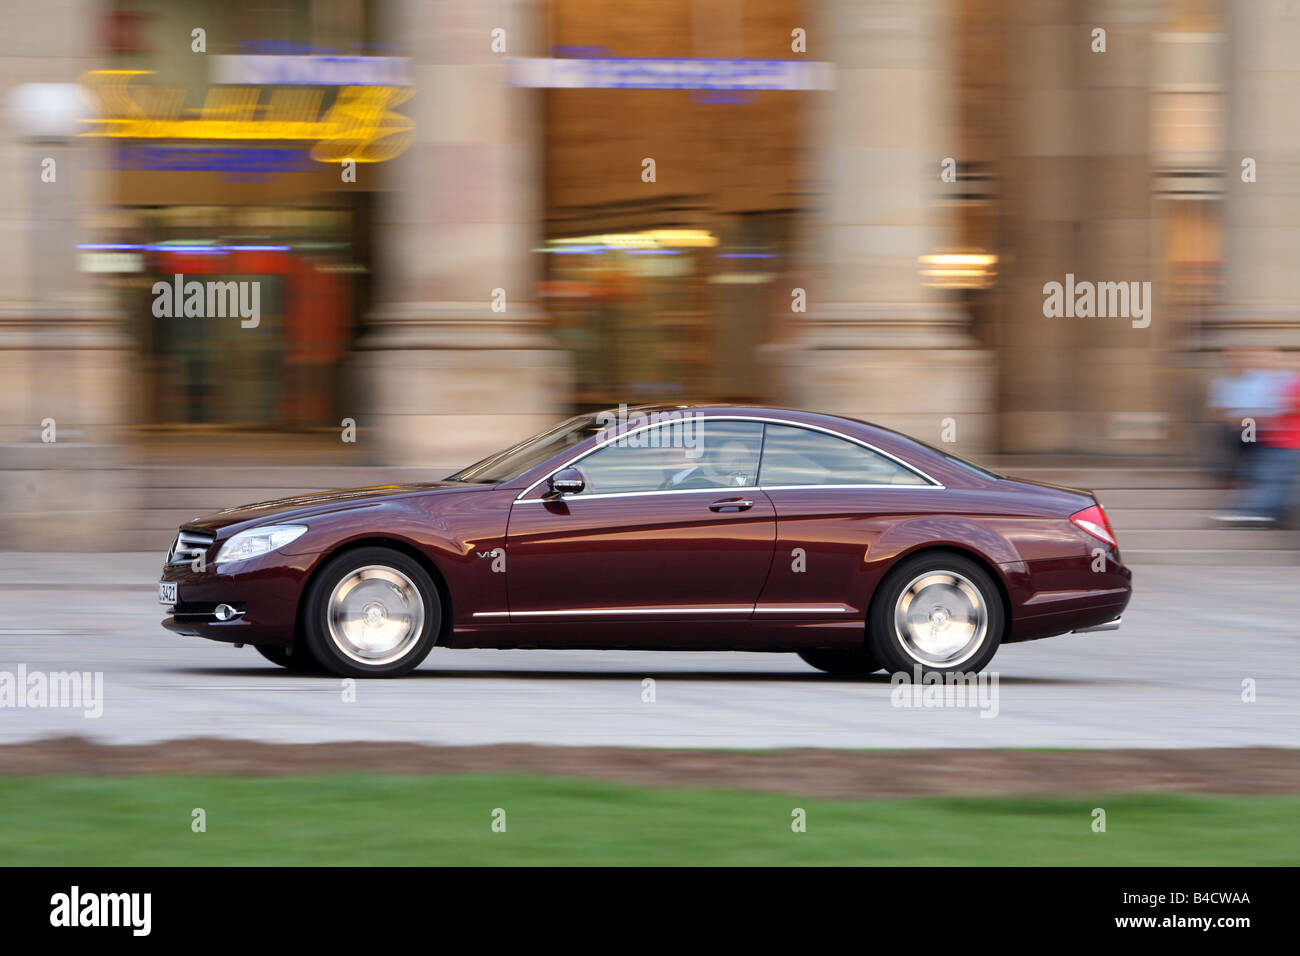 Mercedes CL 600, model year 2006-, ruby colored, driving, side view, City - Stock Image